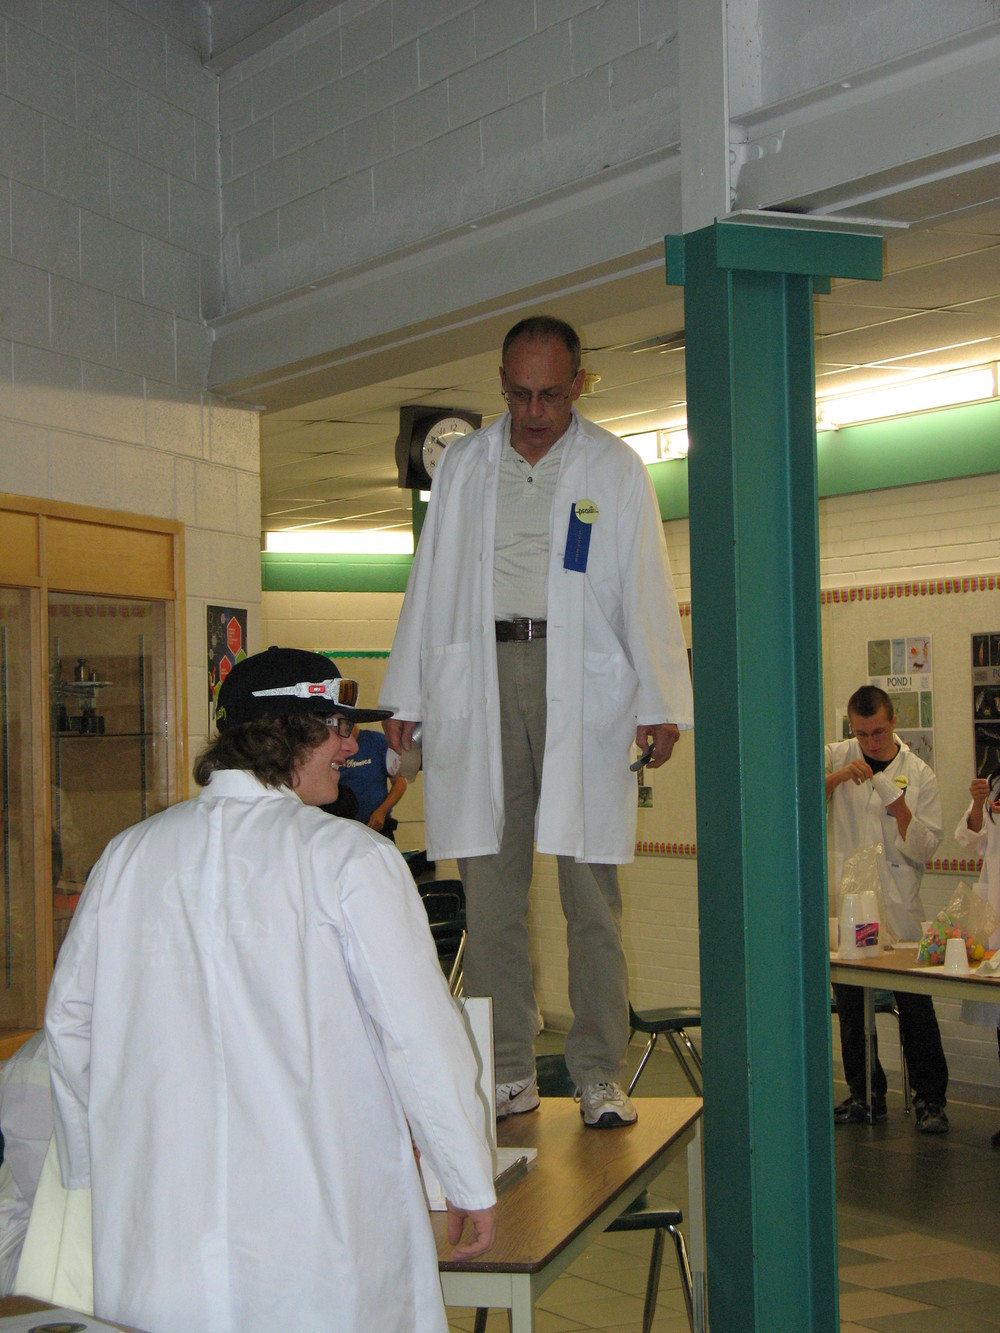 Clem demonstrating an earthquake at the 2011 Family Science Olympics.